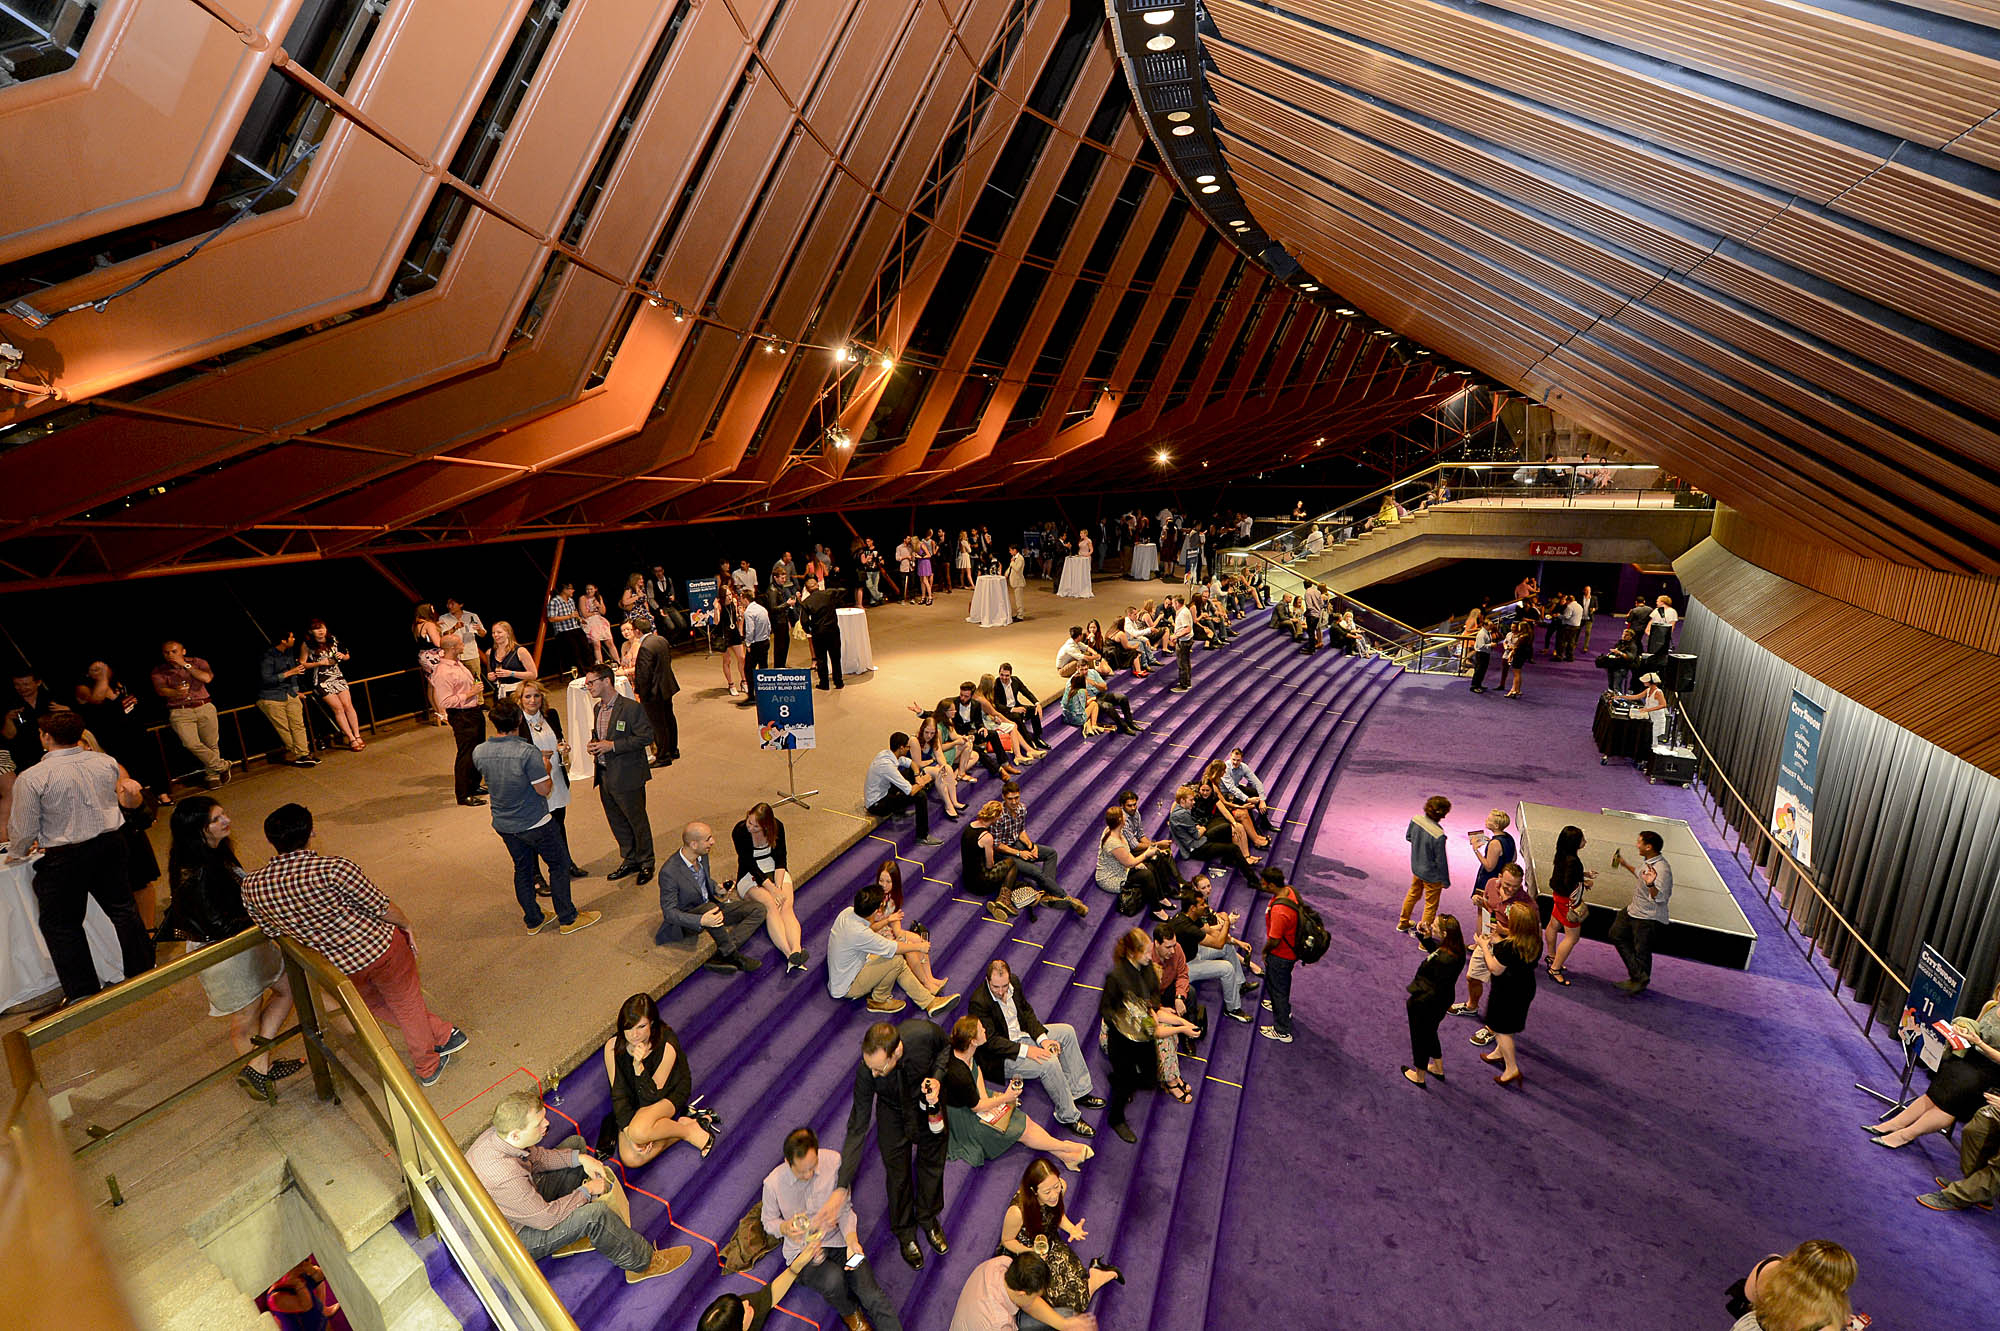 top level datingdating cityswoon style at the guinness world record for the biggest blind date at sydney opera house - Biggest House In The World 2014